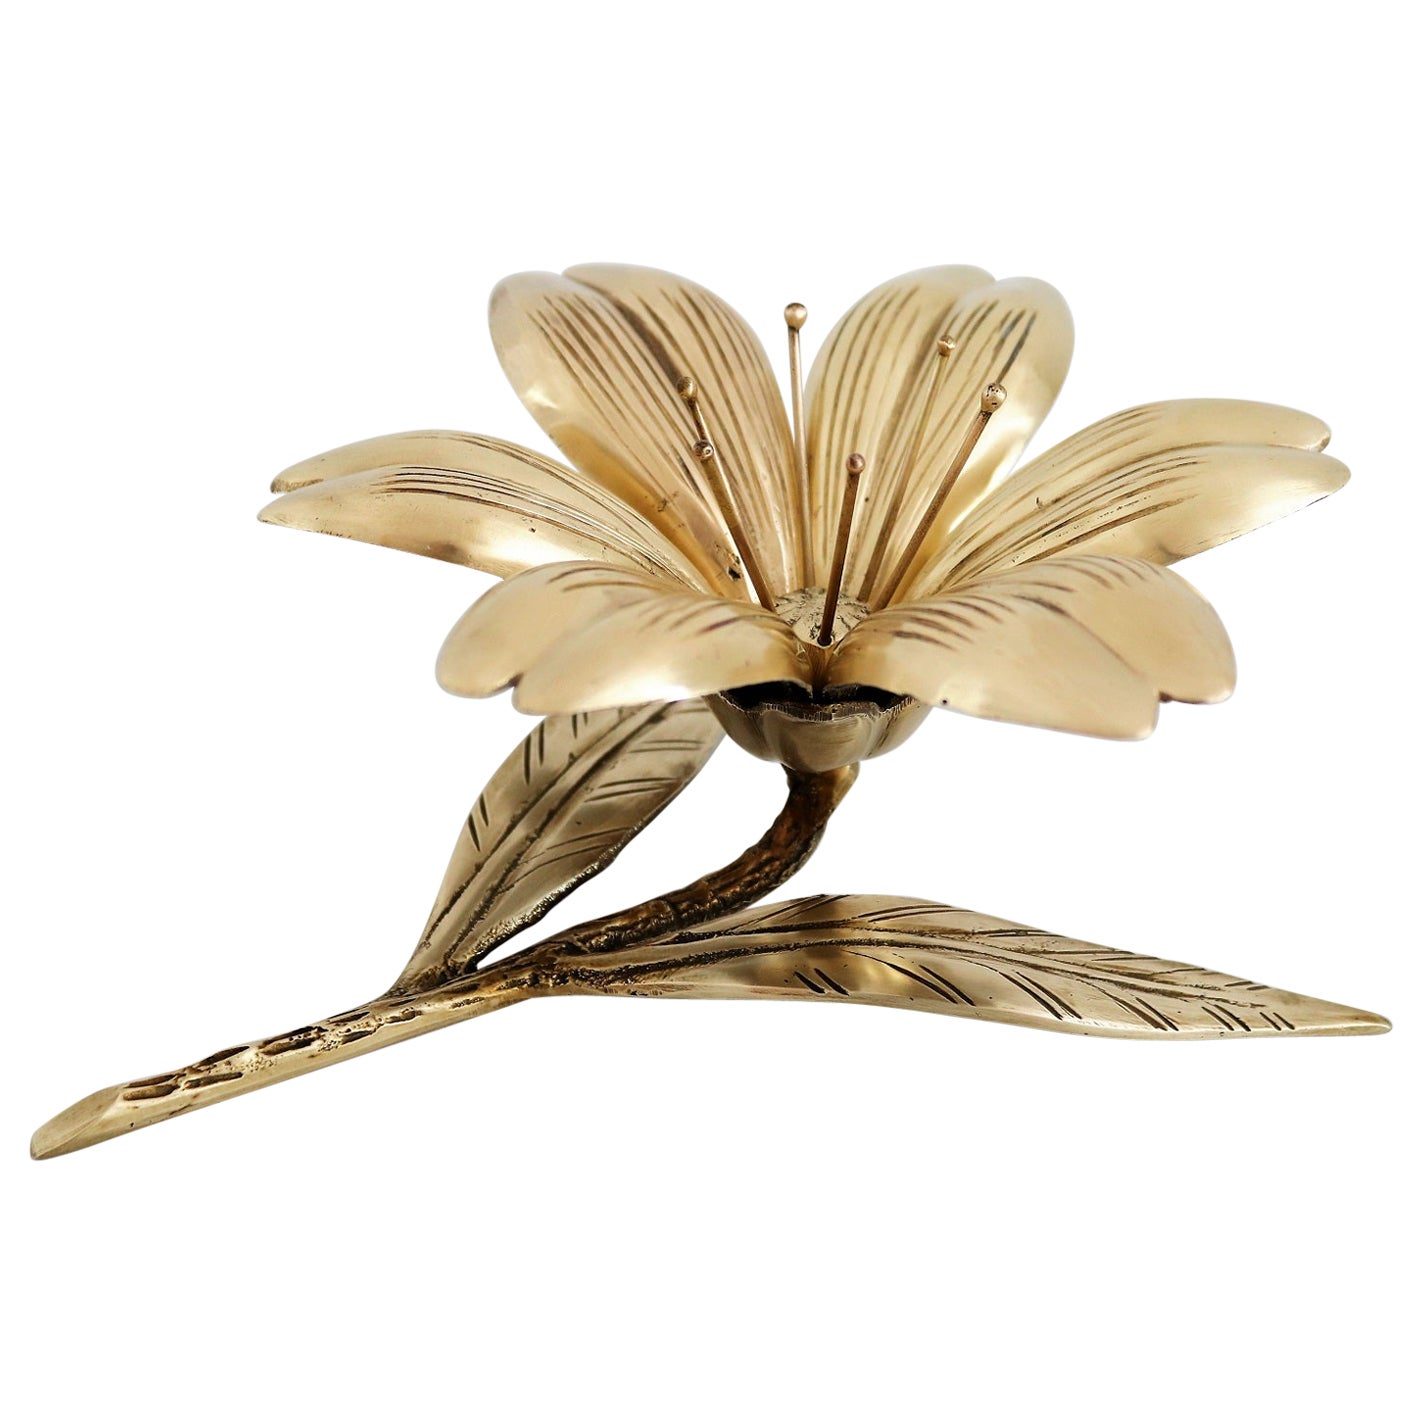 Italian Midcentury Flower in Brass with Petal Ashtrays for Cigarettes, 1950s